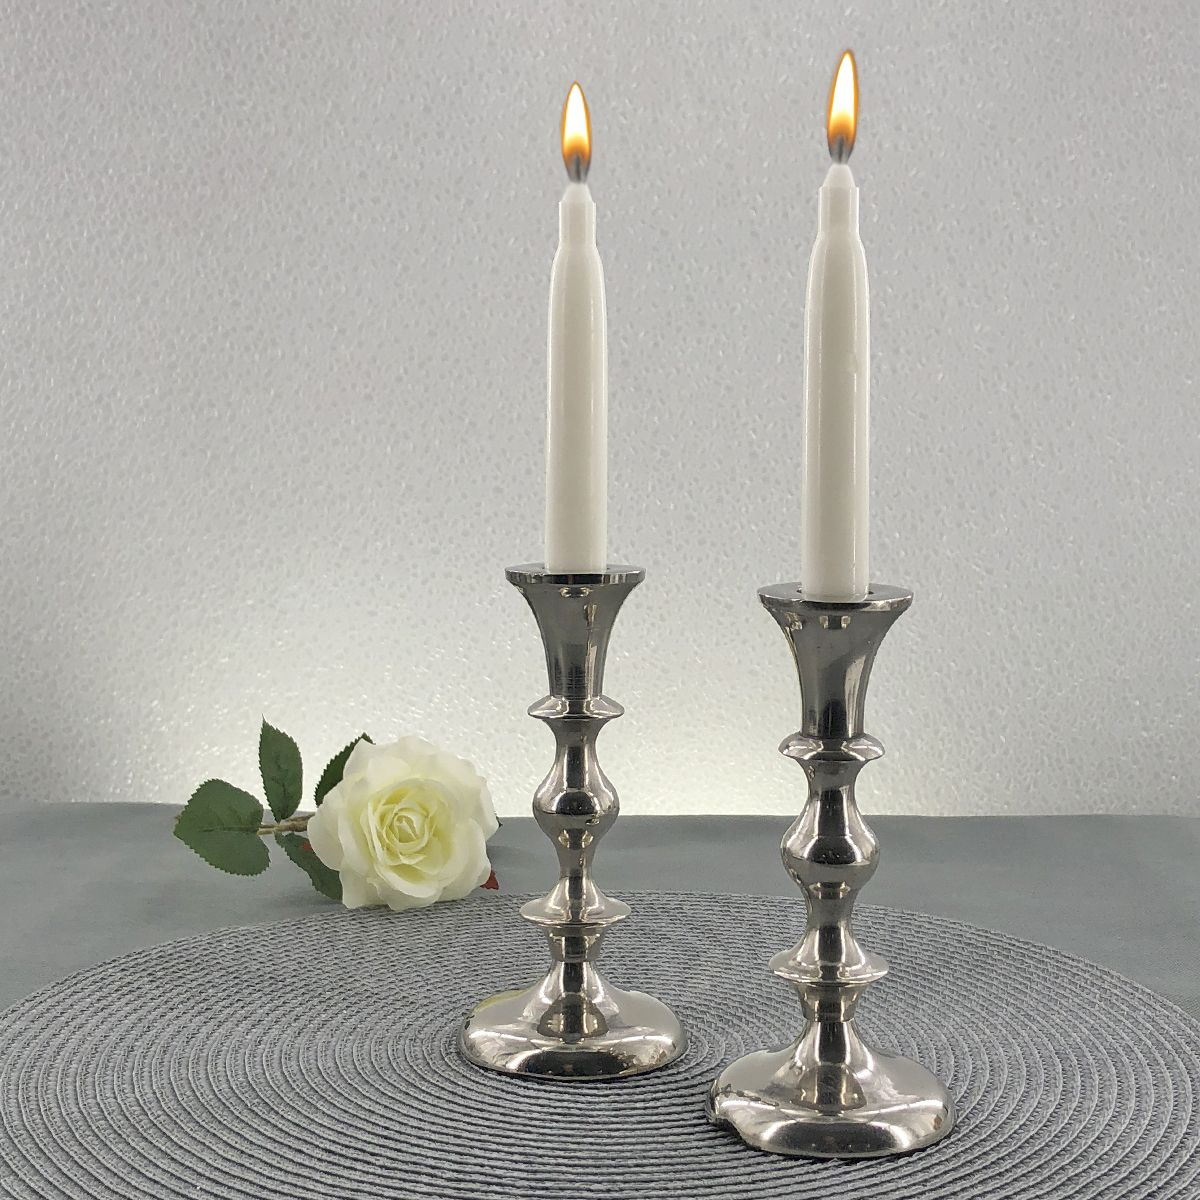 Dining Collection Shabbos Candles Deluxe - 72 ct.